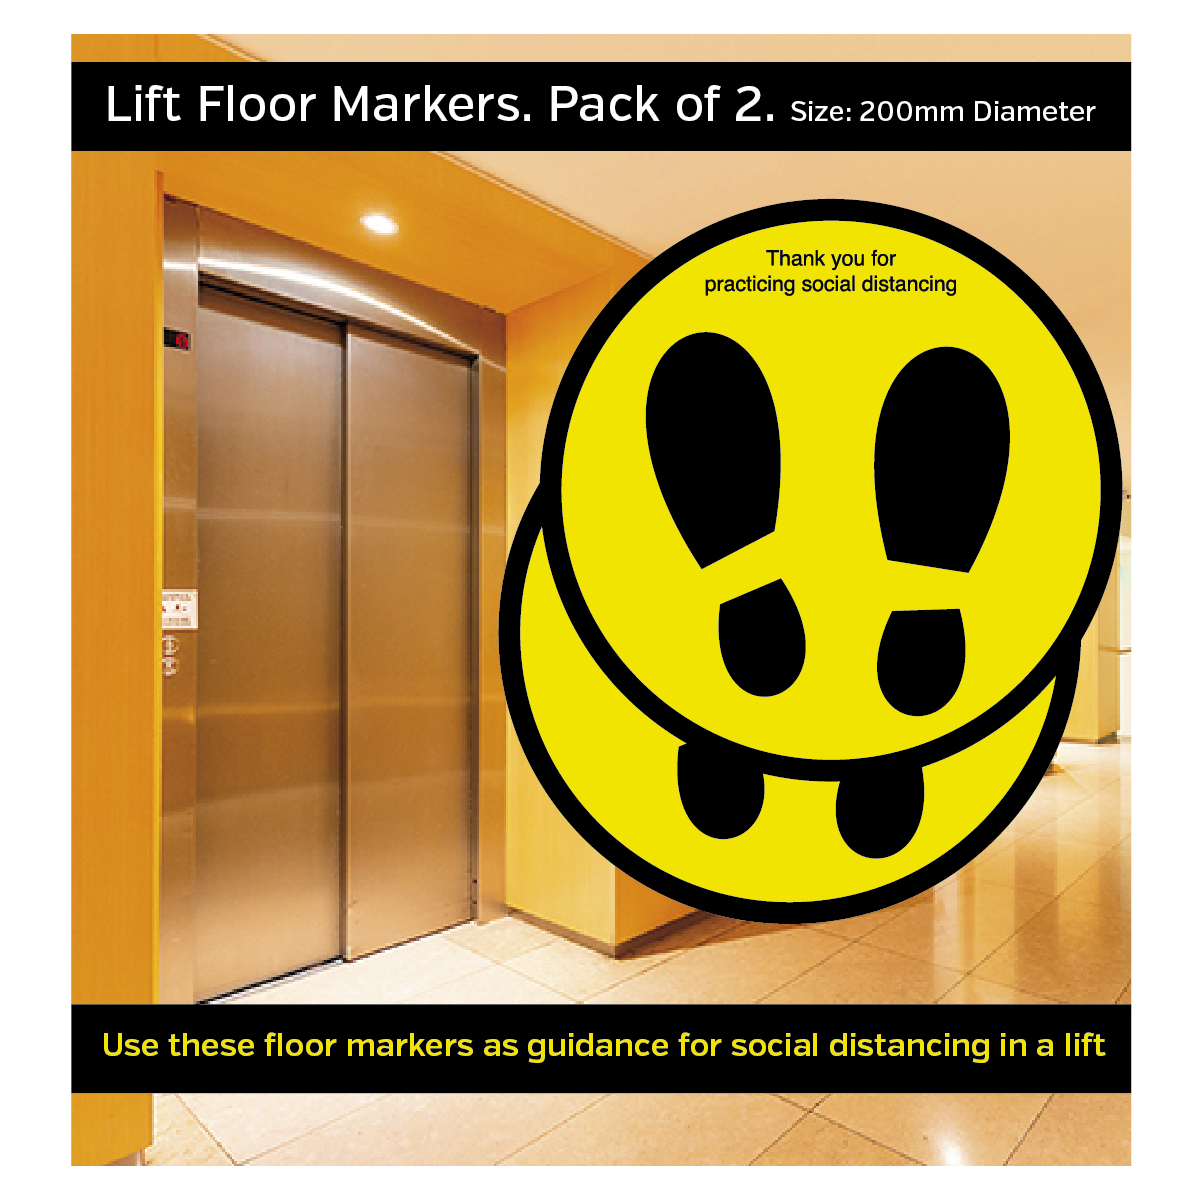 Lift Social Distancing Floor Markers. Pack of 2